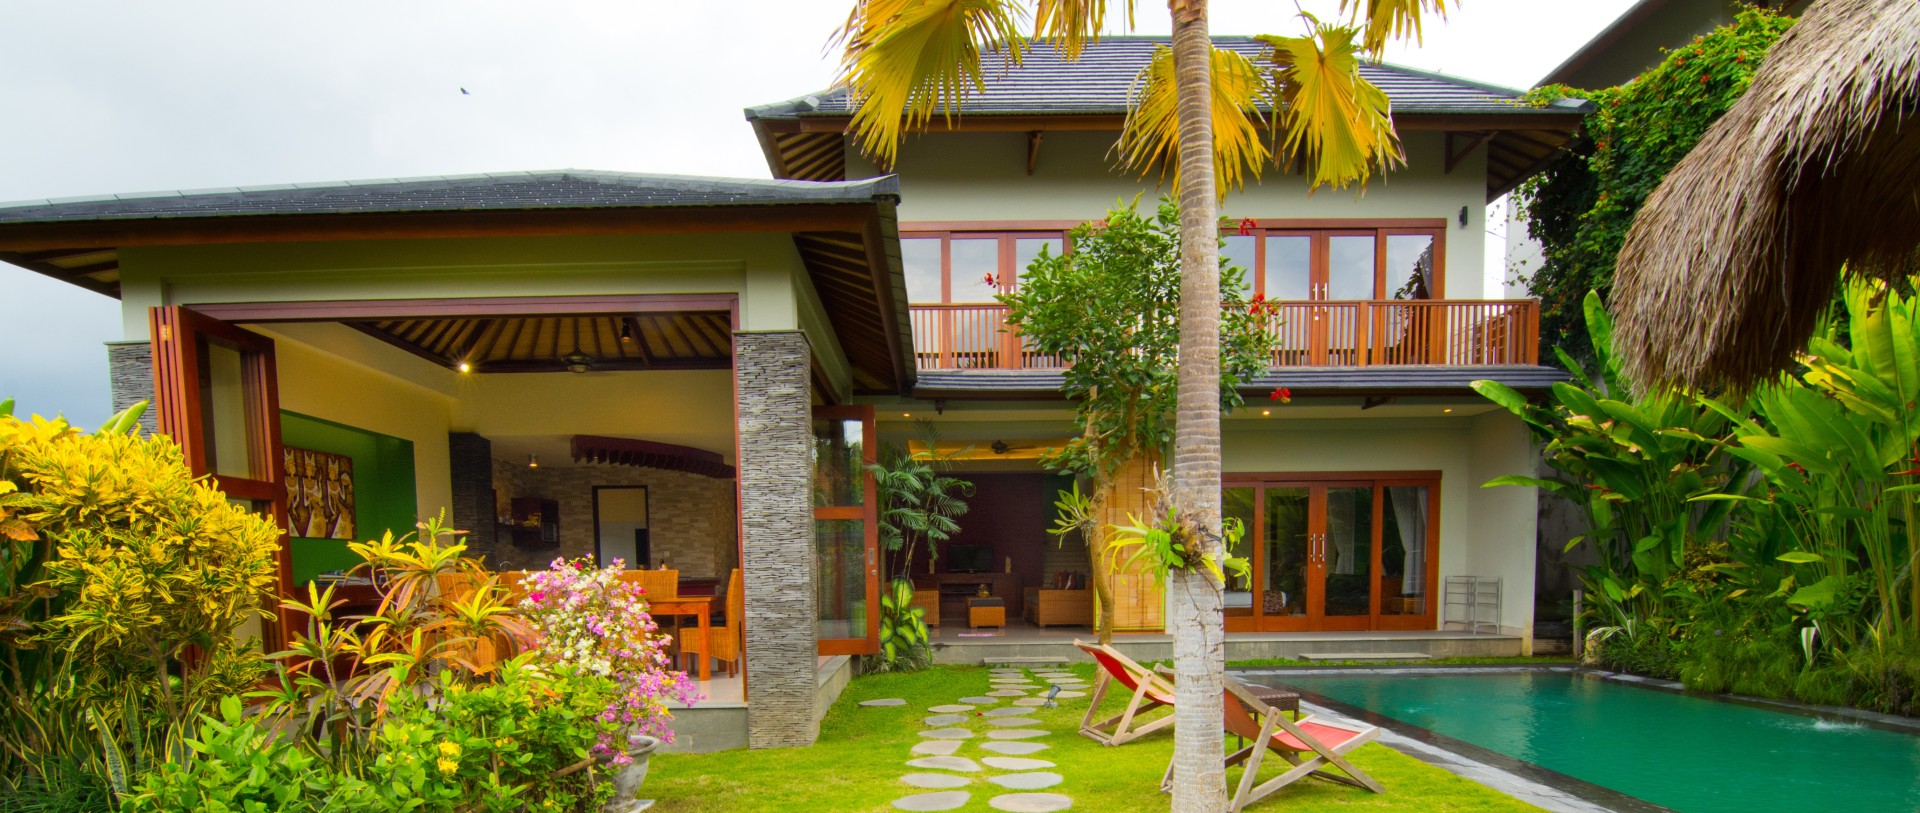 Luxury private villa accommodation in canggu yoma villas for Luxury accommodation bali